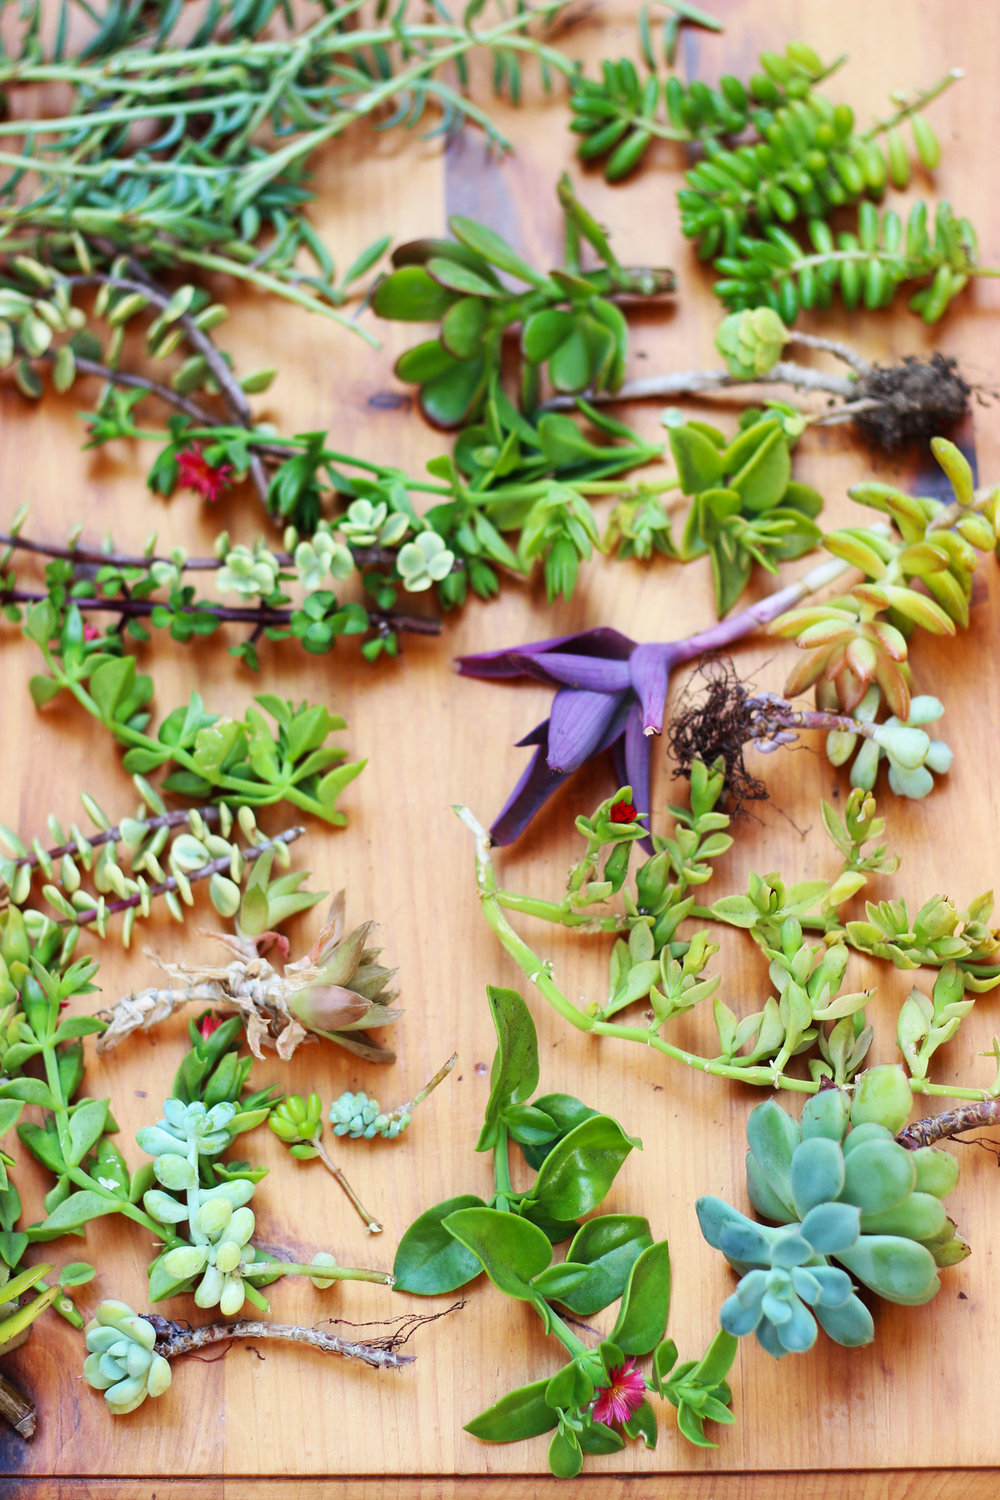 Let succulent cuttings sit for a day before gluing.  Don't place in direct sun.